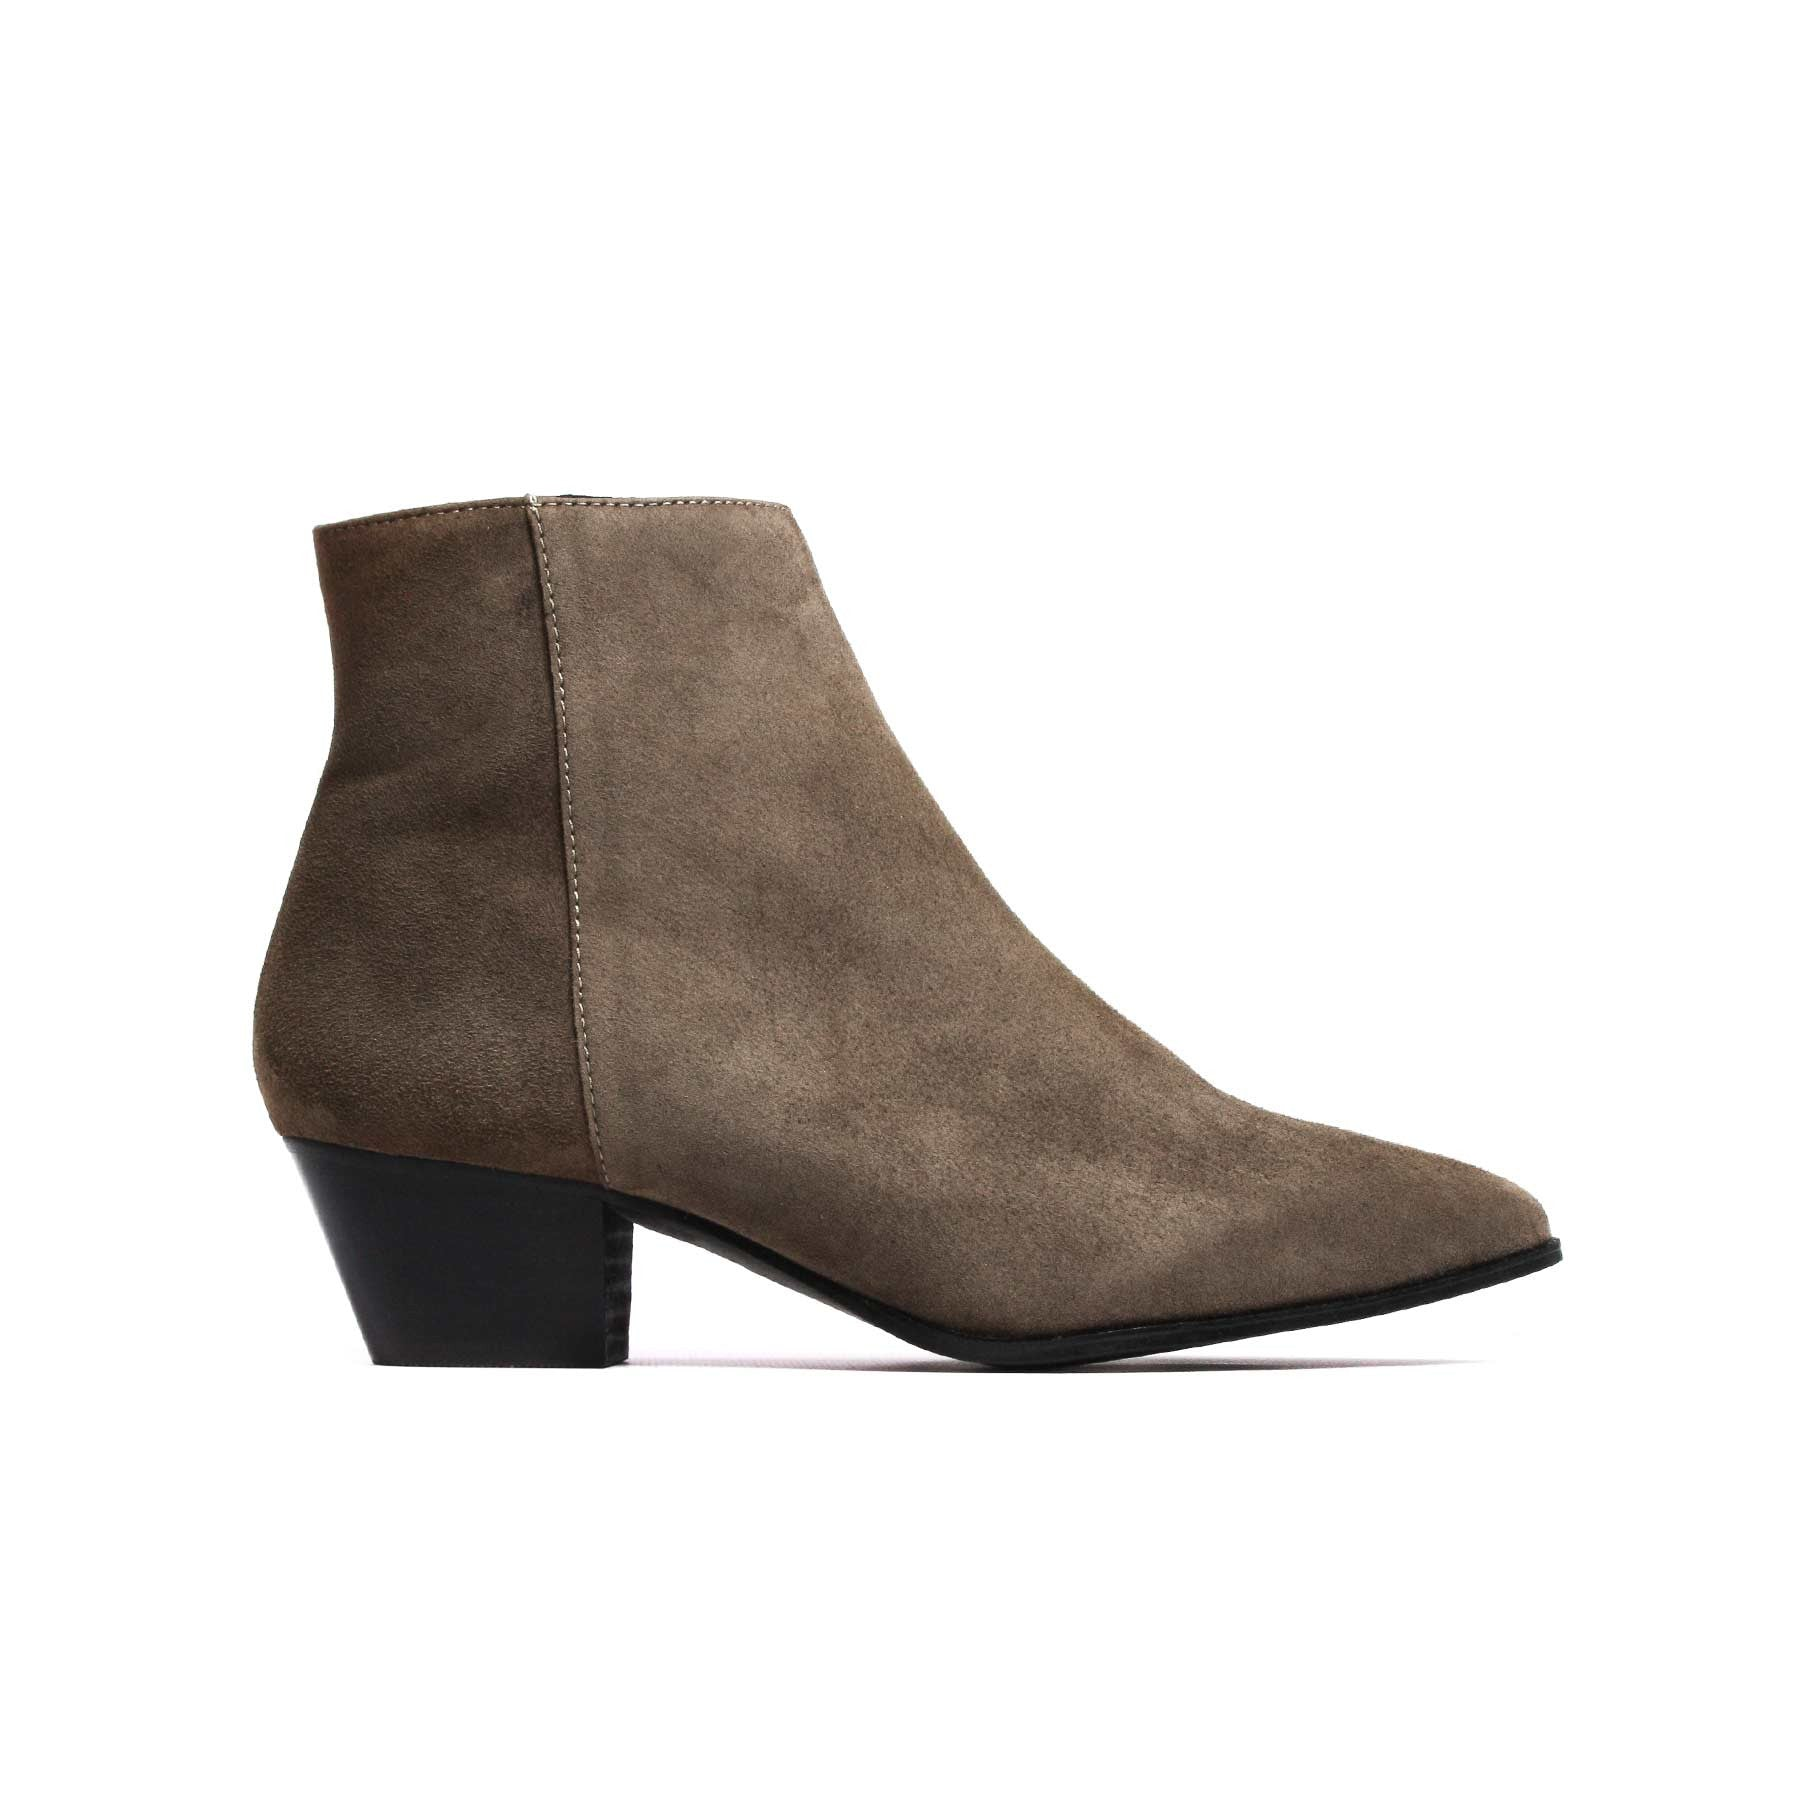 Boots, Bleecker Khaki Suede - Lintervalle shoes for woman